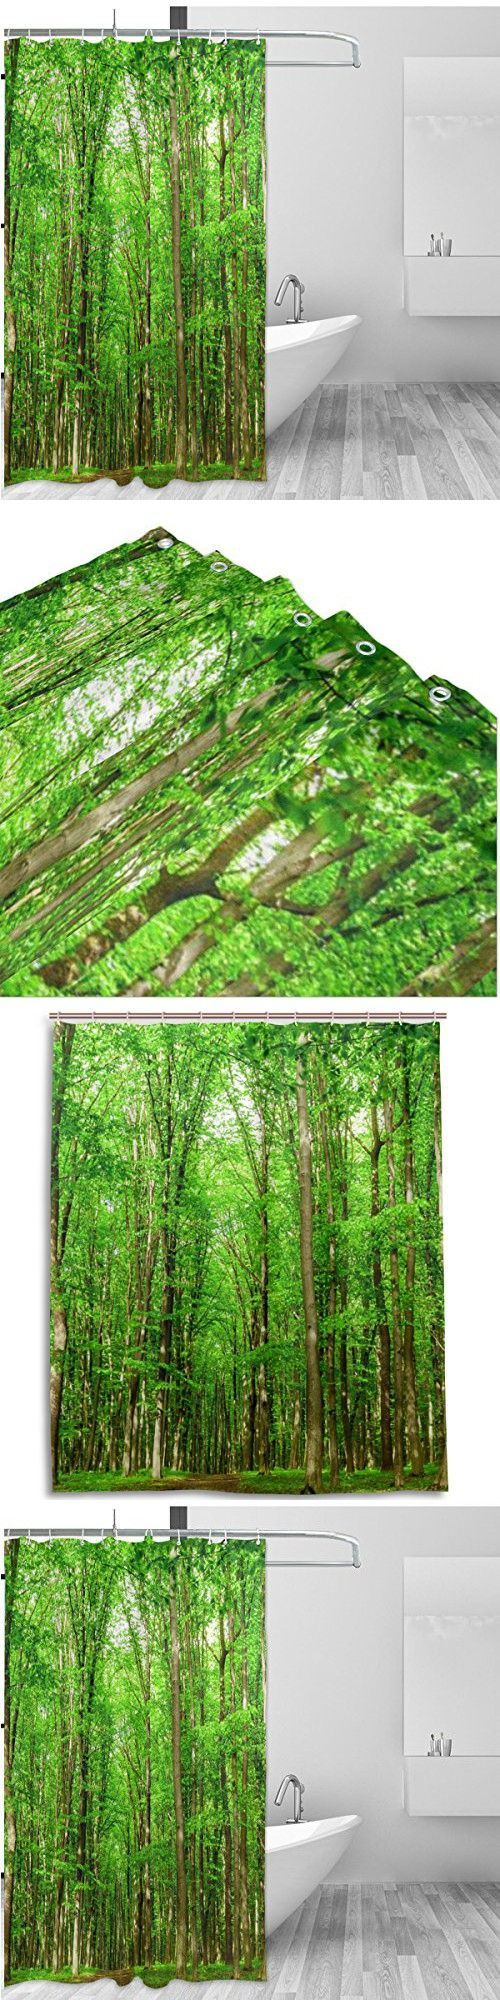 tree of life home decor shower curtain set by landscape scene tropical woodland